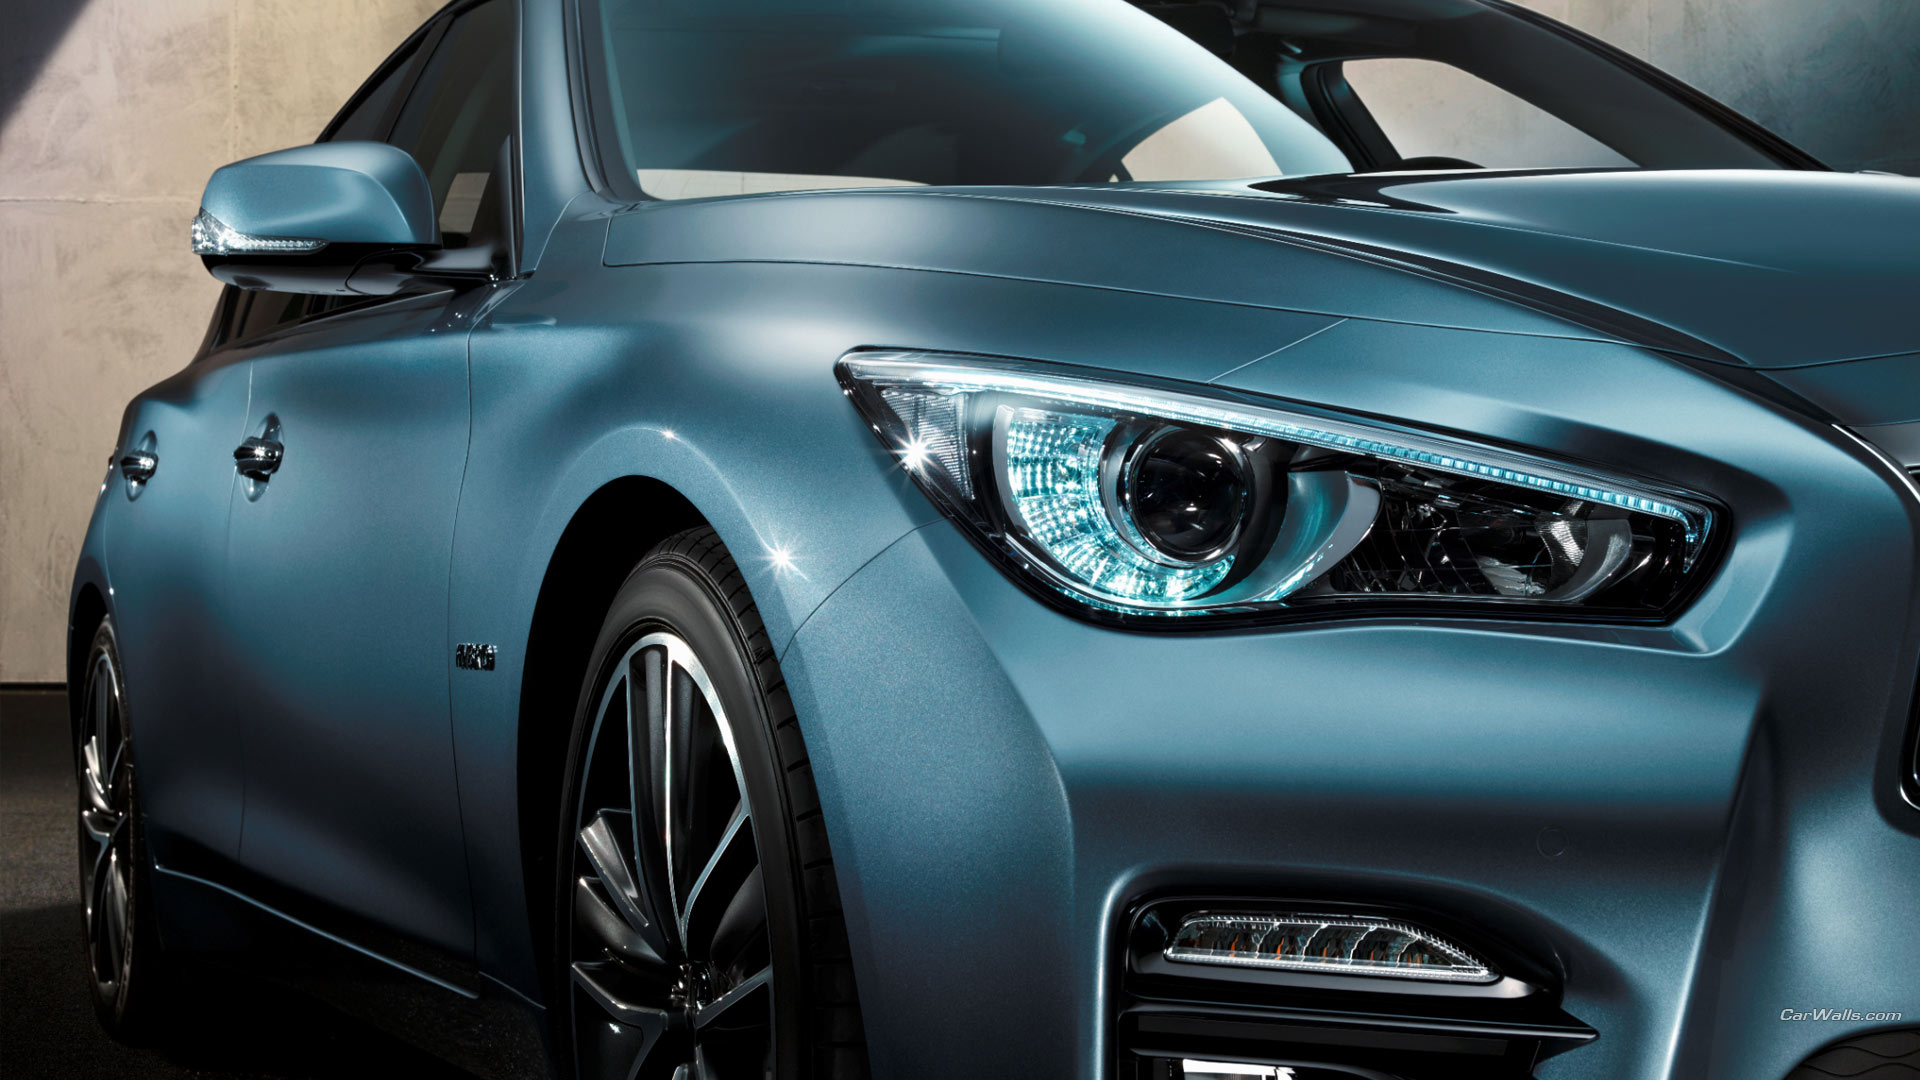 68 Infiniti Q50 Hd Wallpapers Background Images